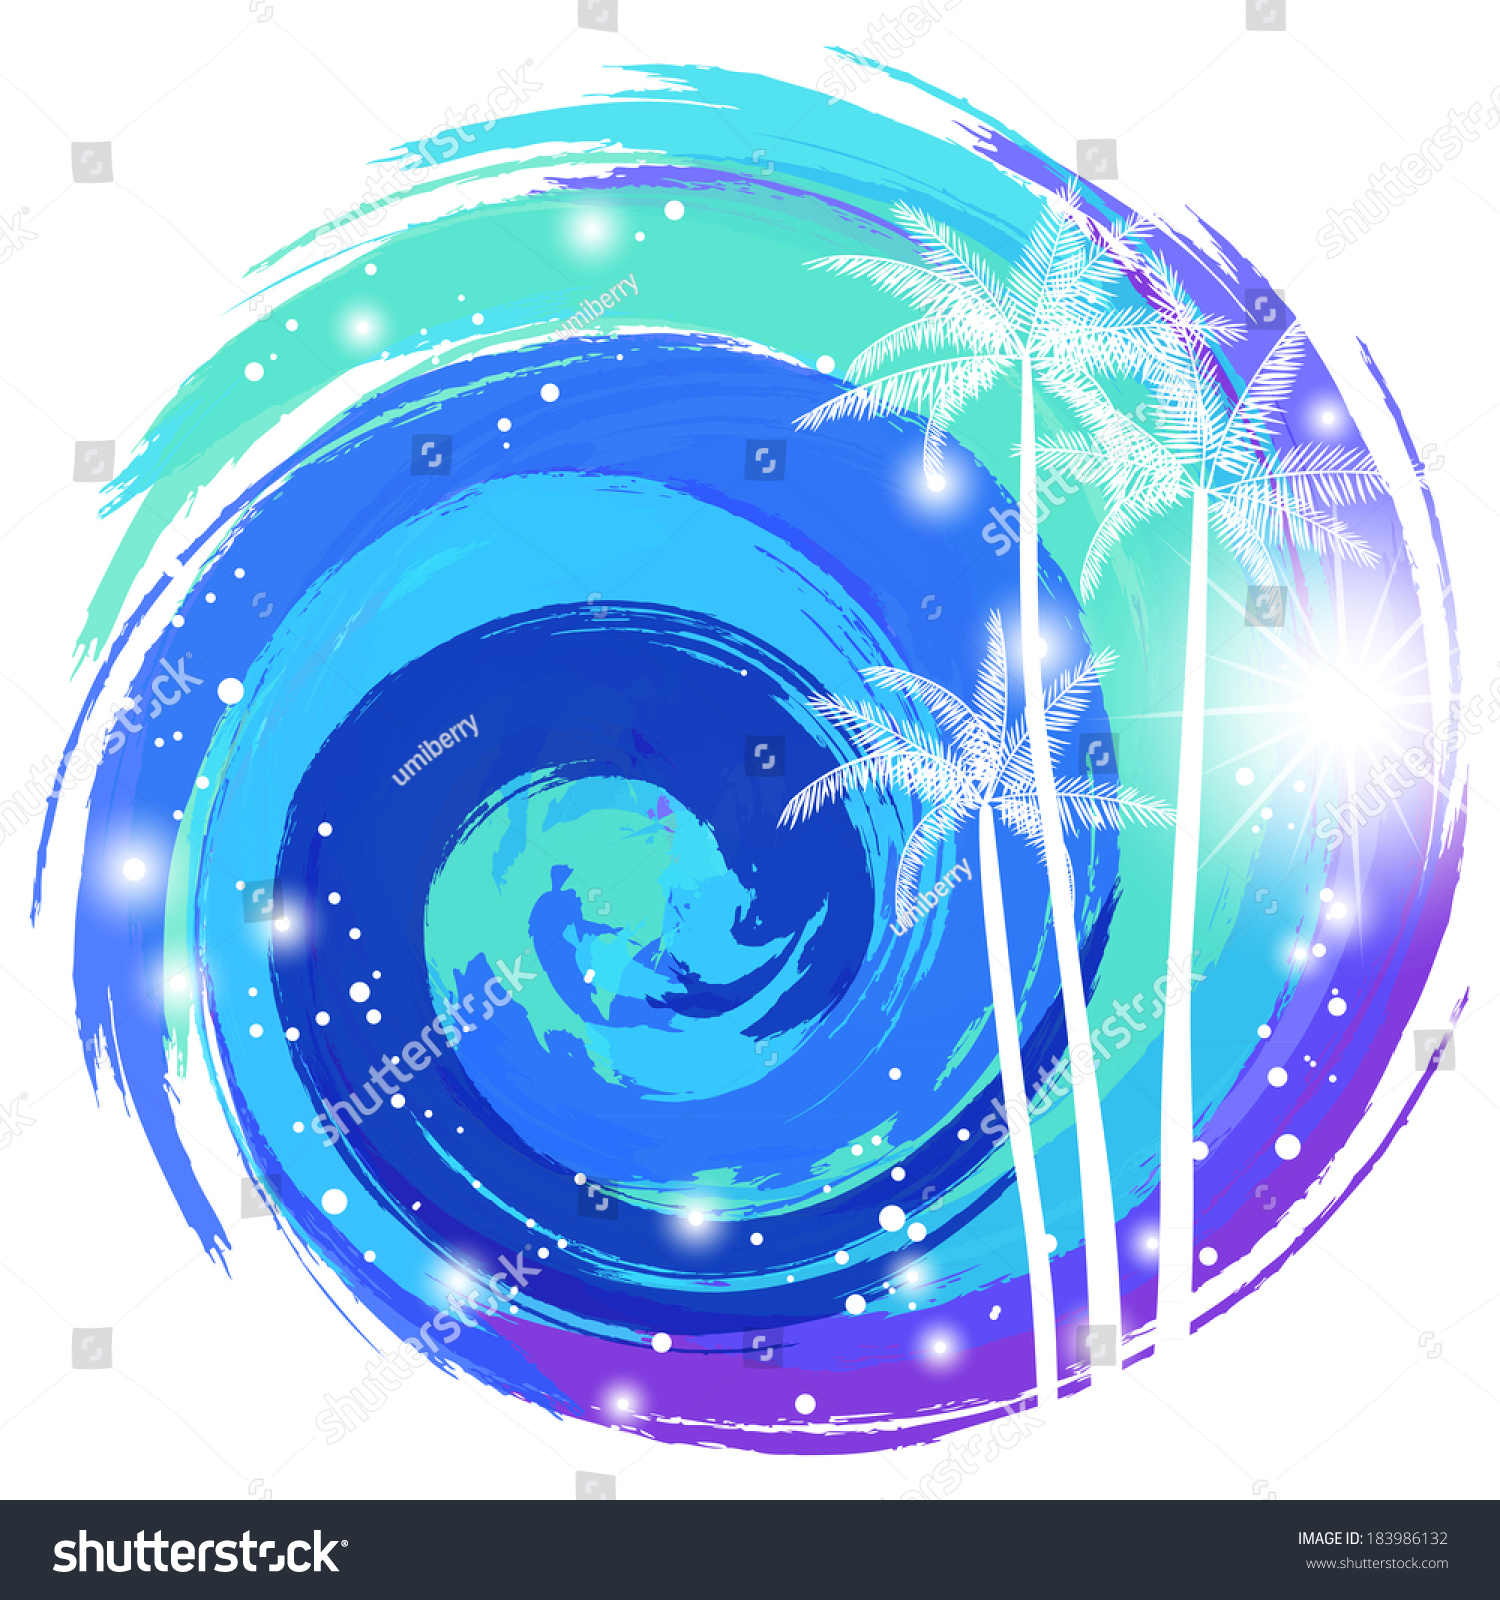 Vortex Cool Sea Stock Vector (Royalty Free) 183986132 - Shutterstock